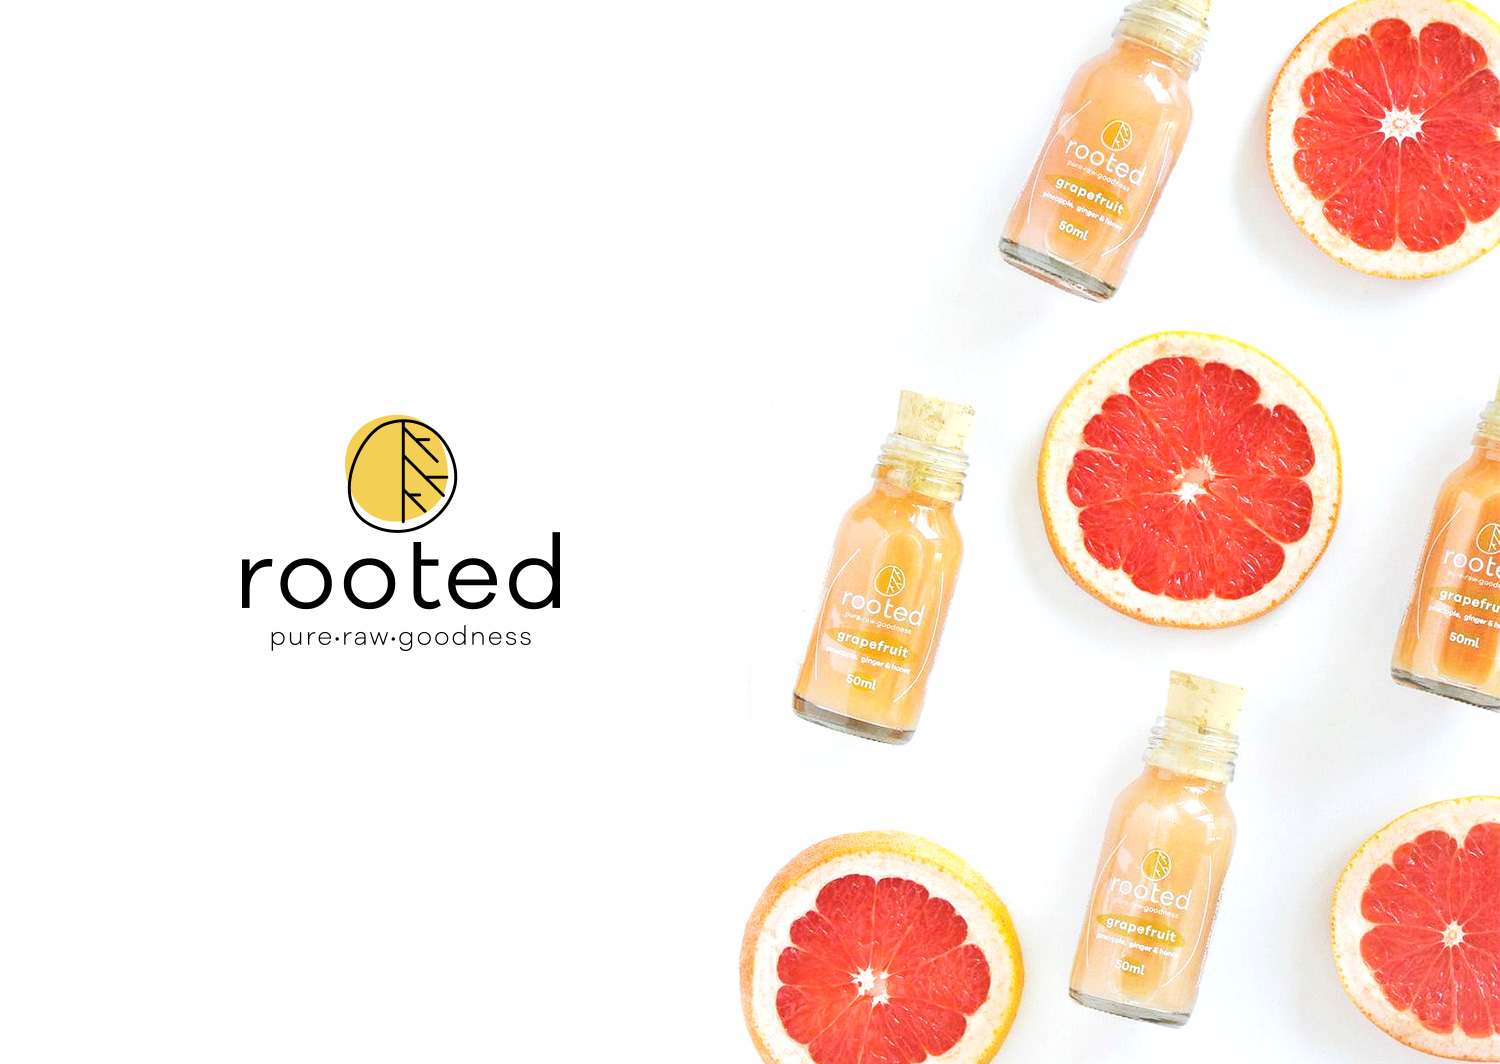 easthouse-co-rooted-banner